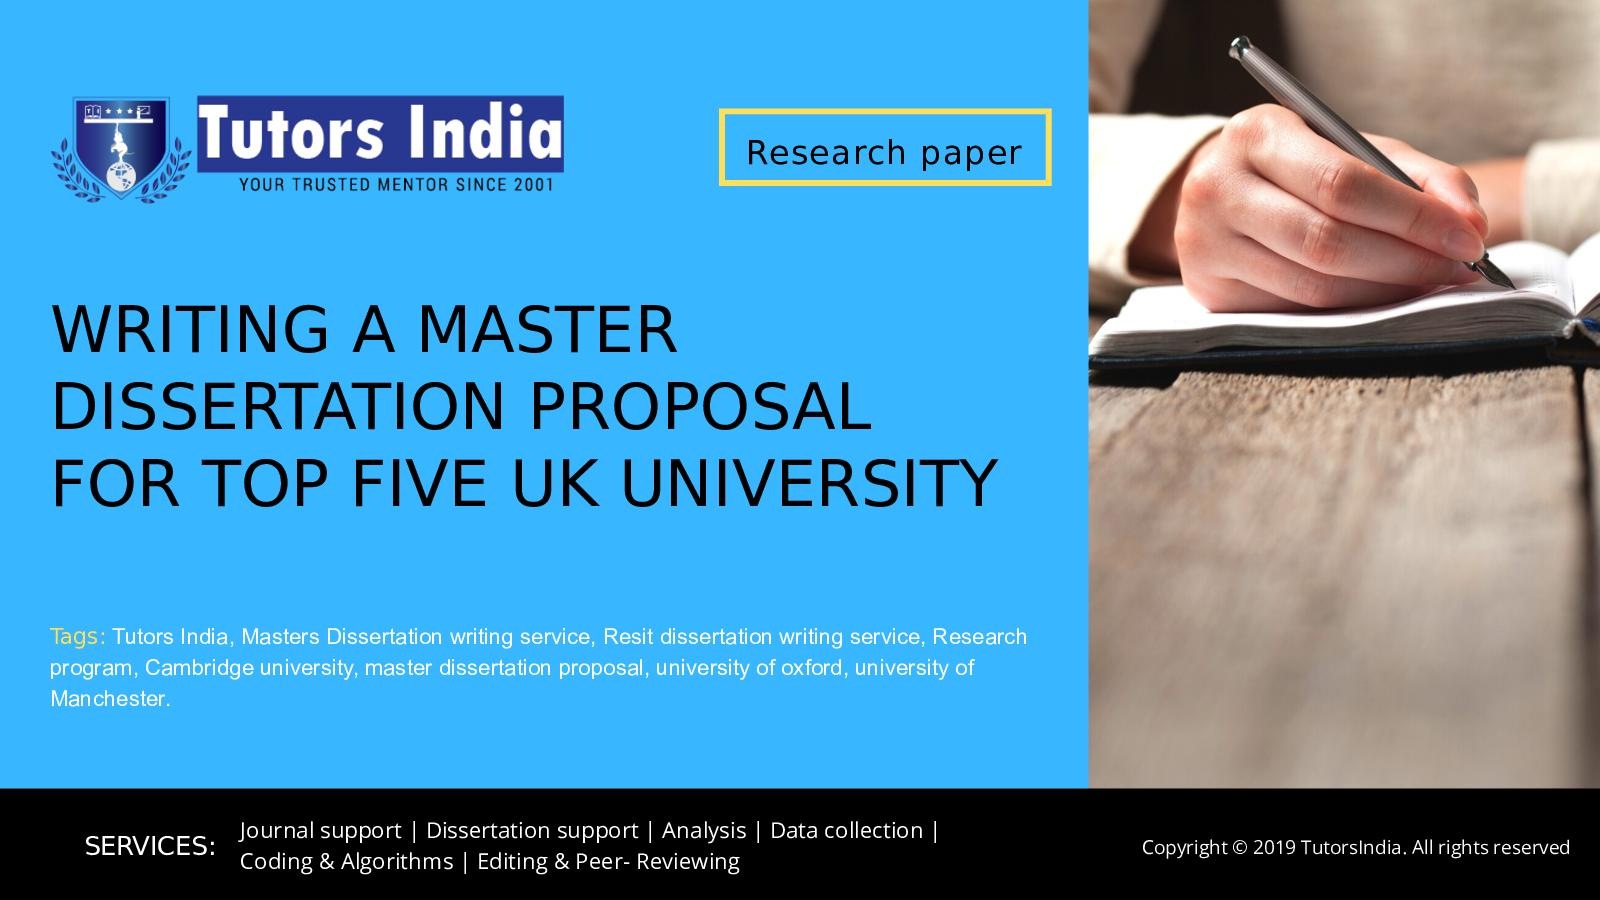 Top dissertation writers service for university top literature review editor services for school